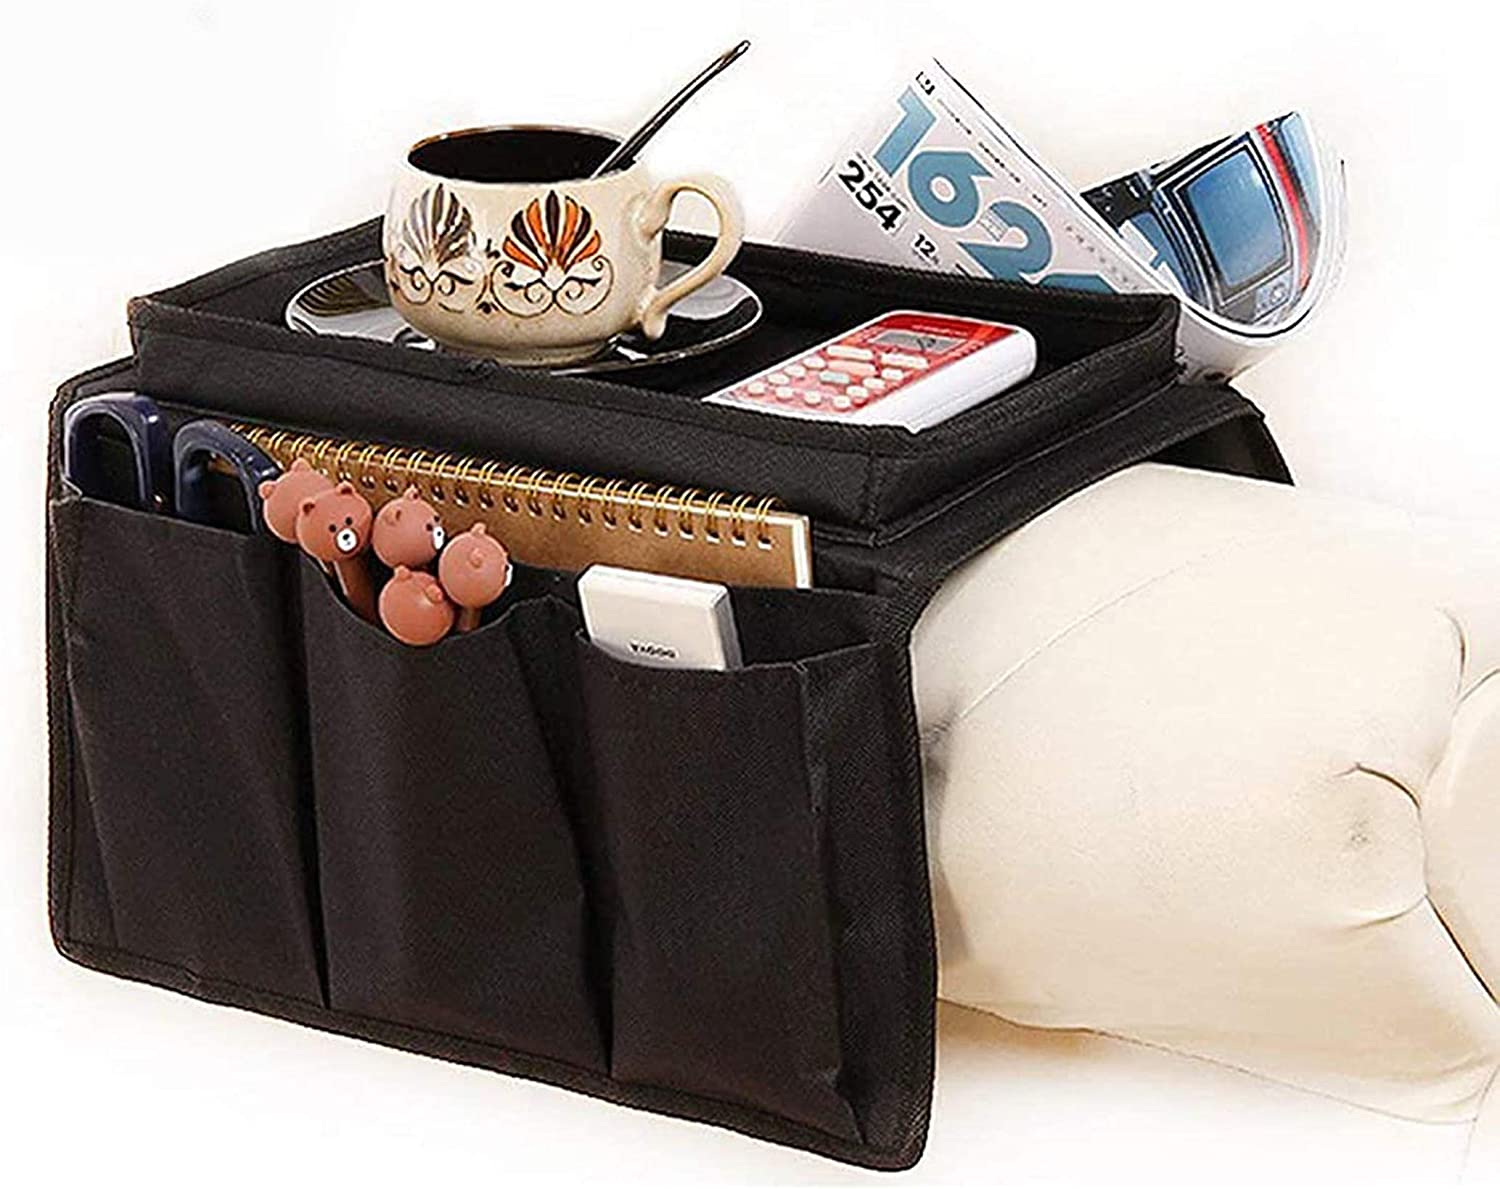 Sofa Armrest Organizer Couch Chair Arm Storage Tv Control Remote Holder Pocket